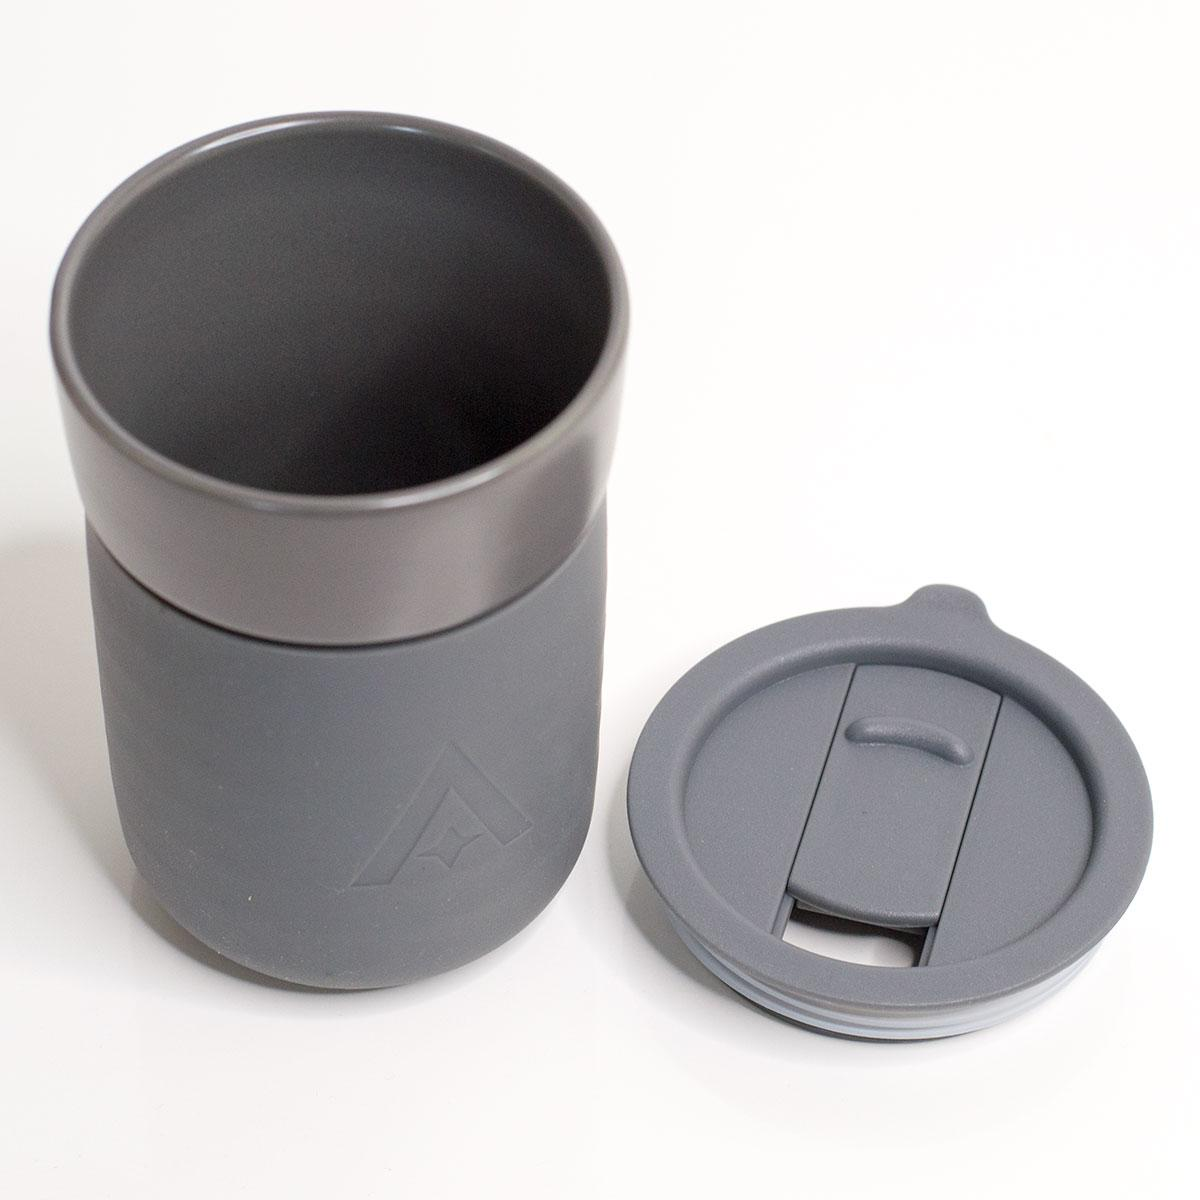 Carry Cup - The Universal Travel Mug by Uberstar (Space Grey)